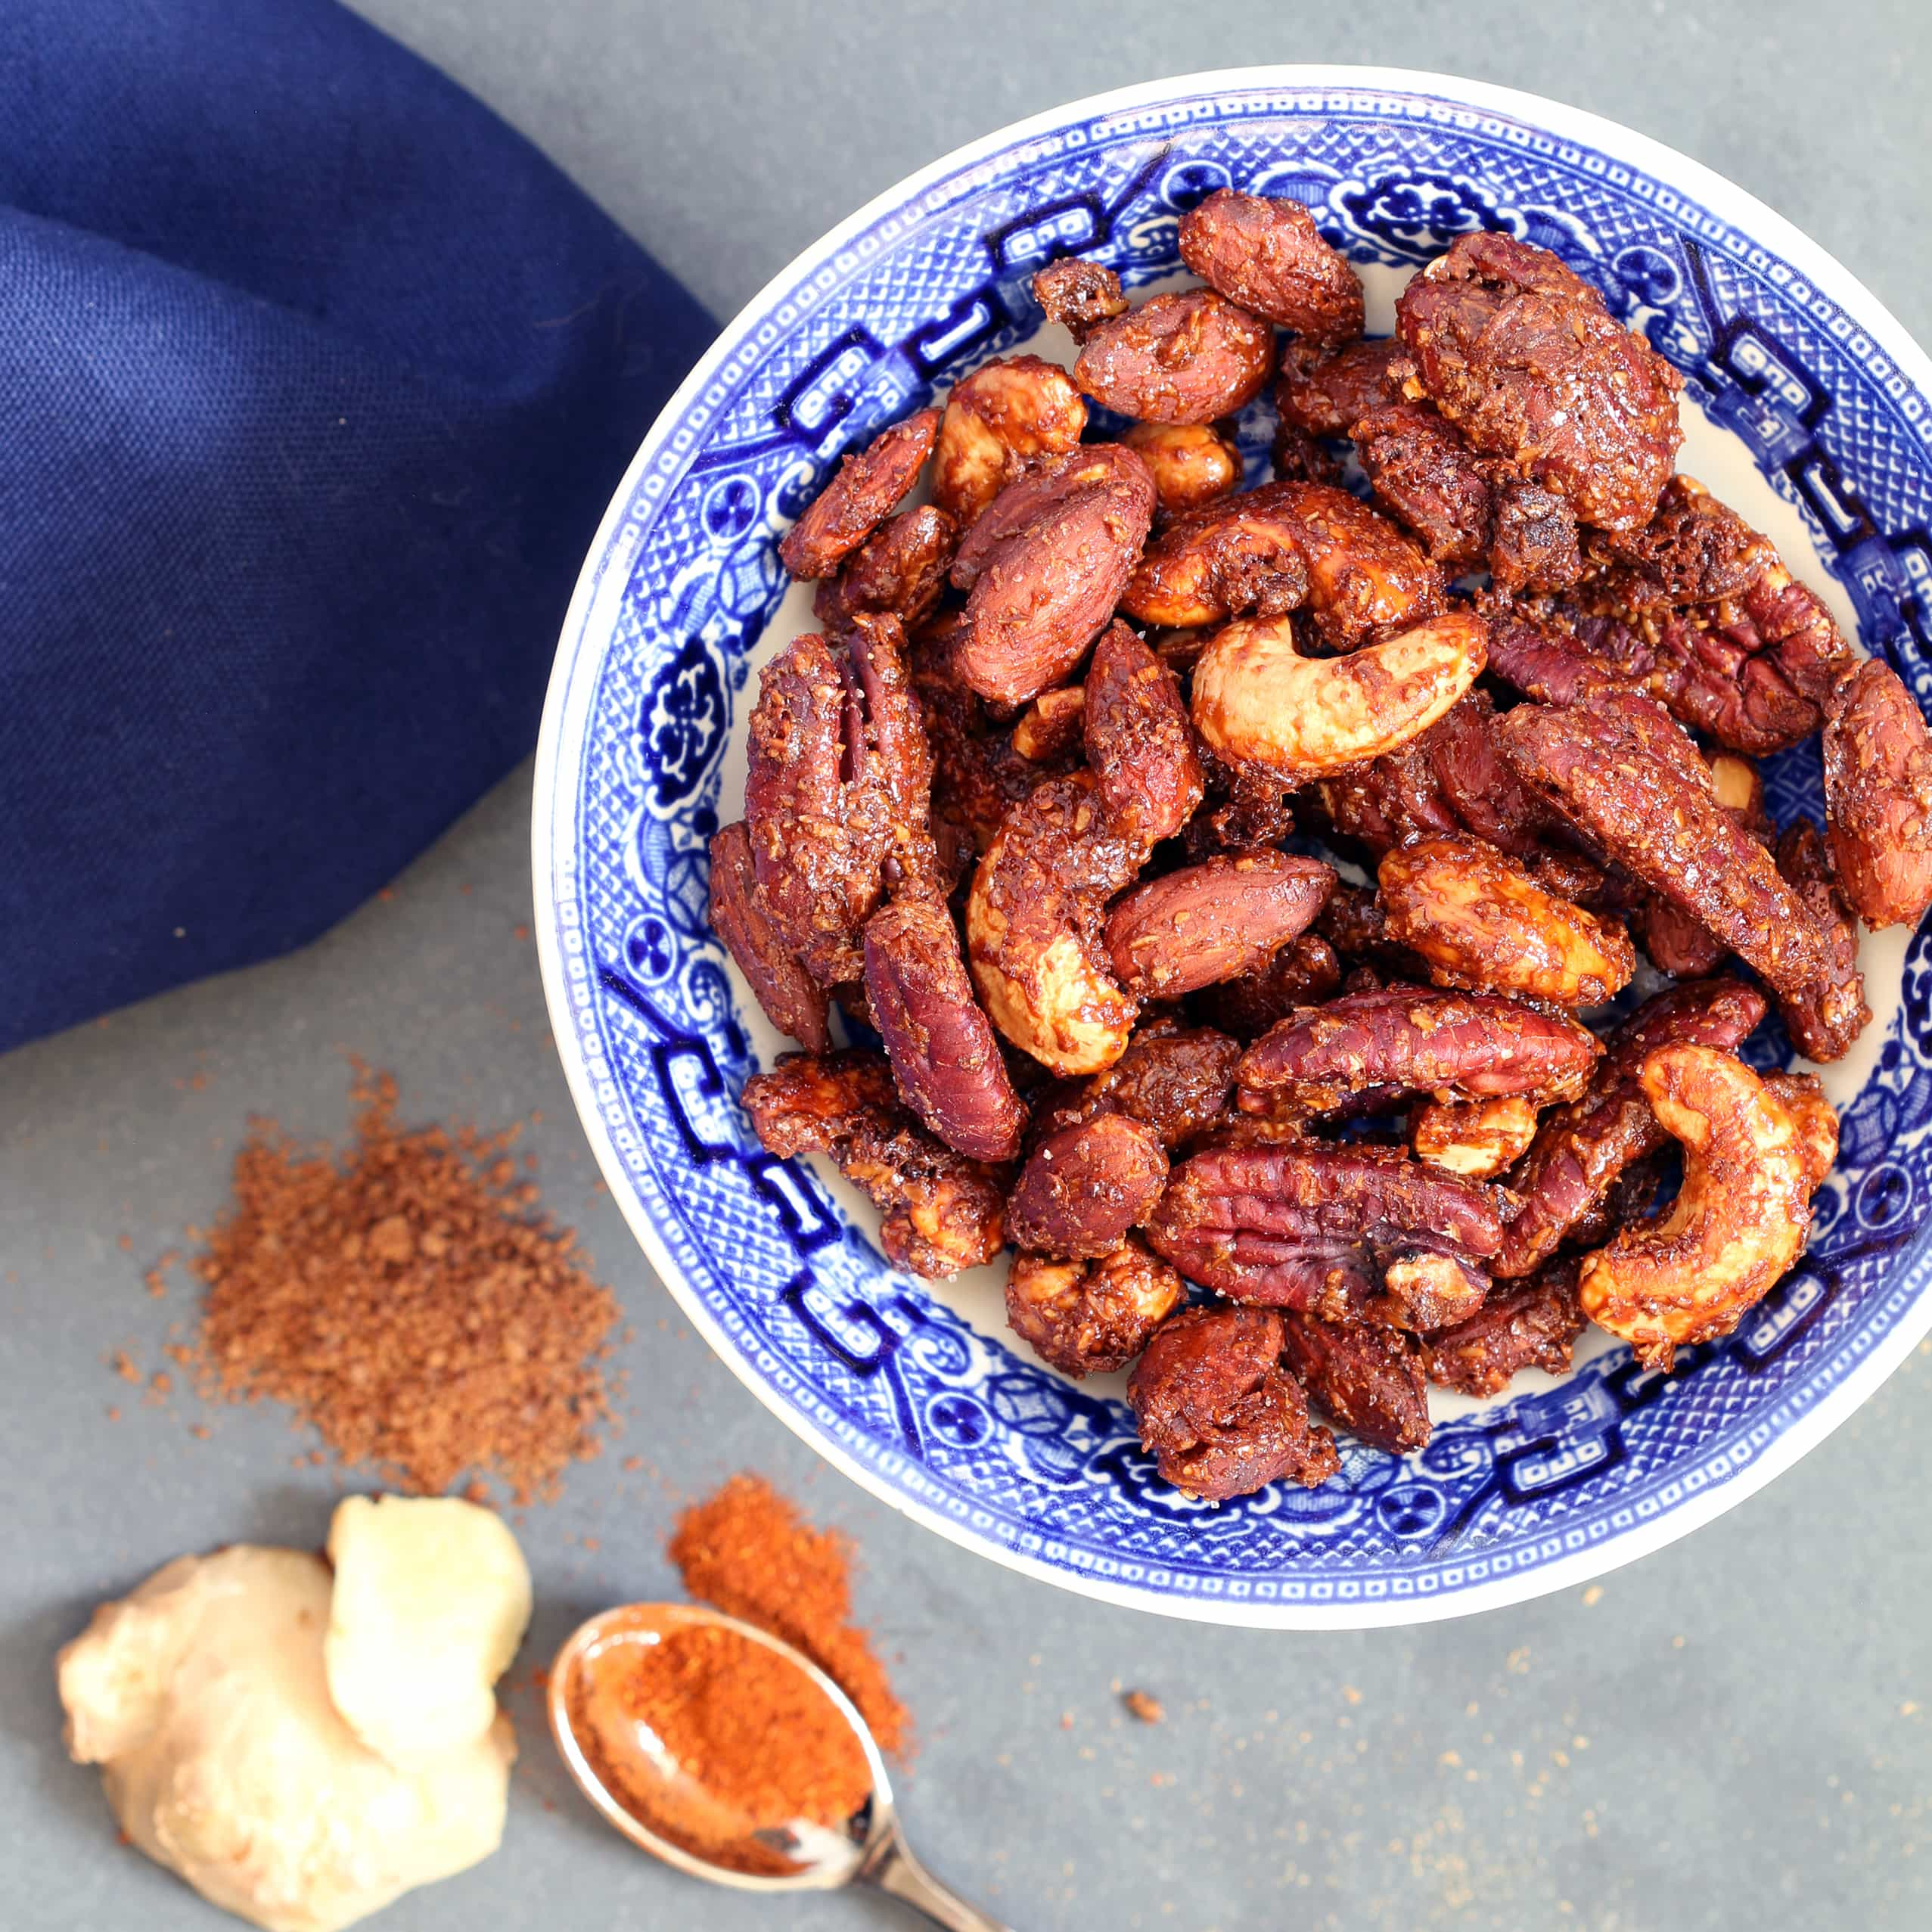 Sweet & Spicy Ginger Nuts (Gluten-free, Plant-based, Refined Sugar-free)